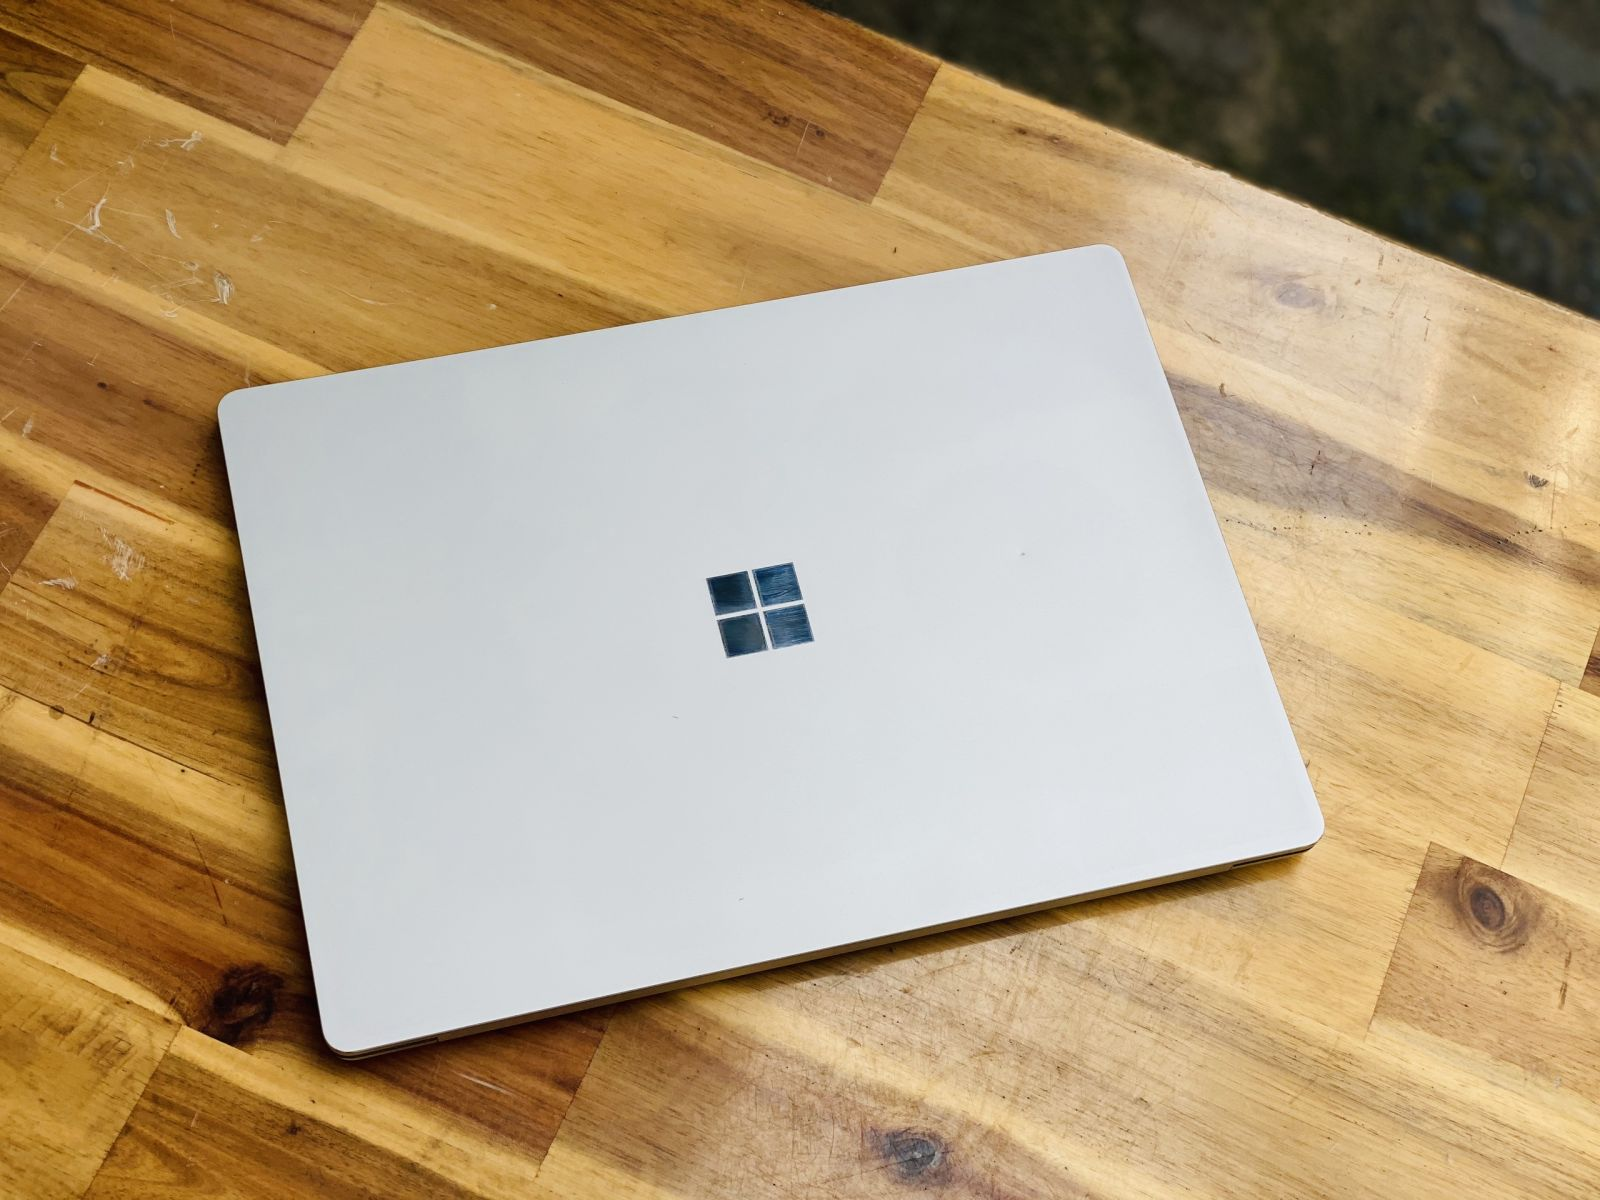 Surface Laptop 2/ i5 8250U/ 8G/ SSD128/ 2K/ Touch/ Win 10/ 13.5in/ Giá rẻ4